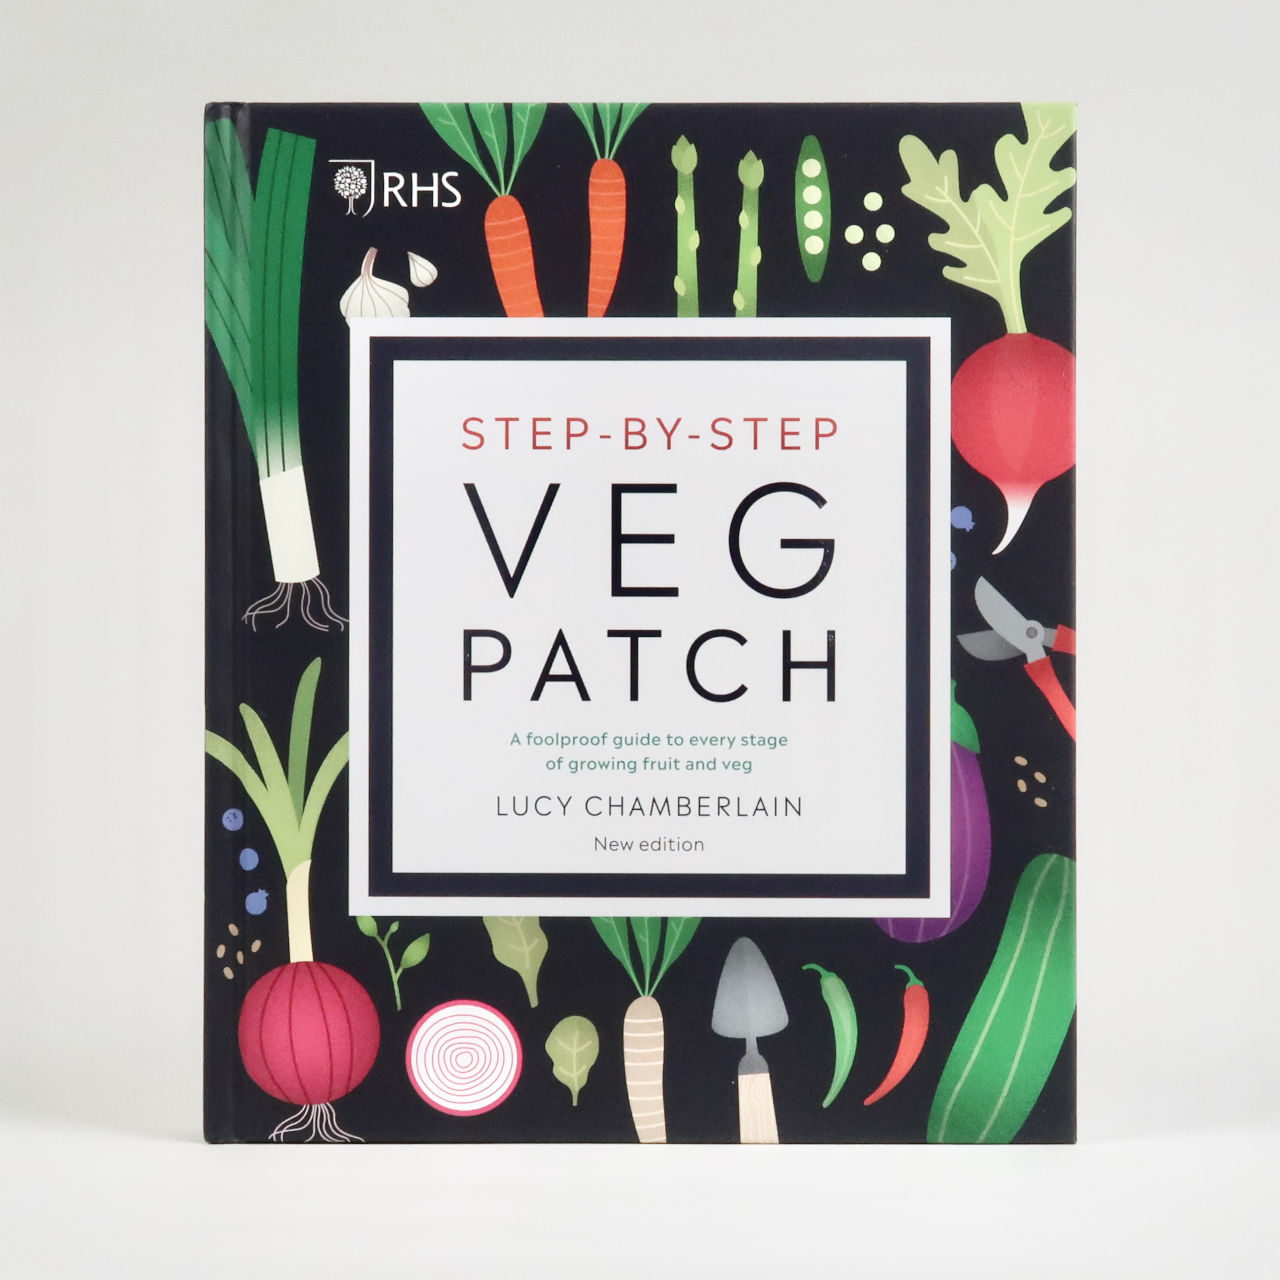 Step-By-Step Veg Patch - Lucy Chamberlain